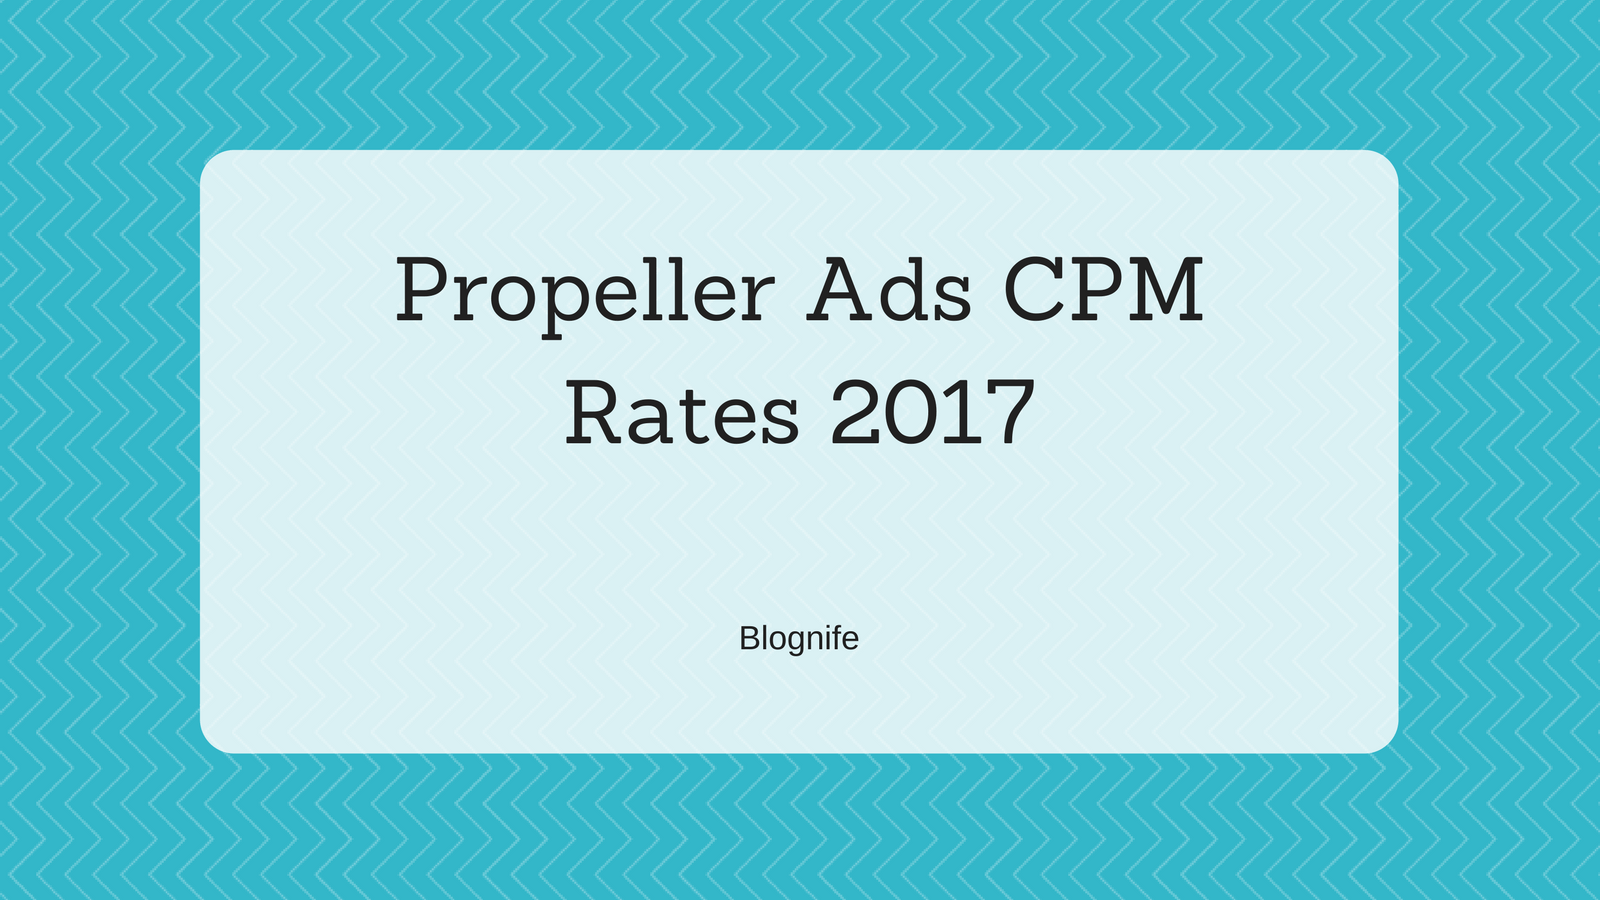 Propeller Ads CPM Rates 2018